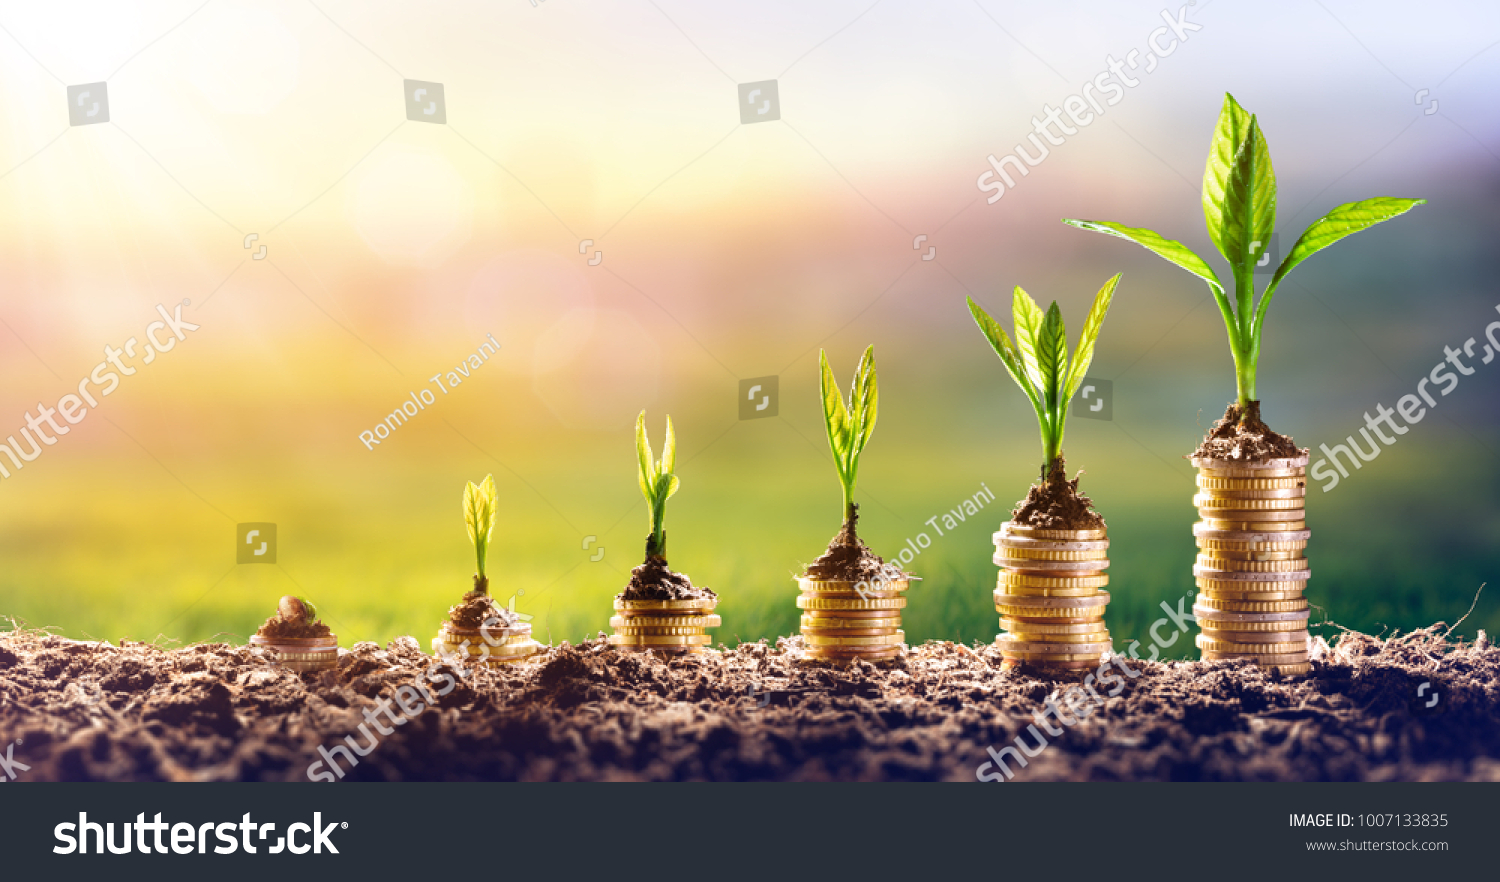 Growing Money - Plant On Coins - Finance And Investment Concept #1007133835